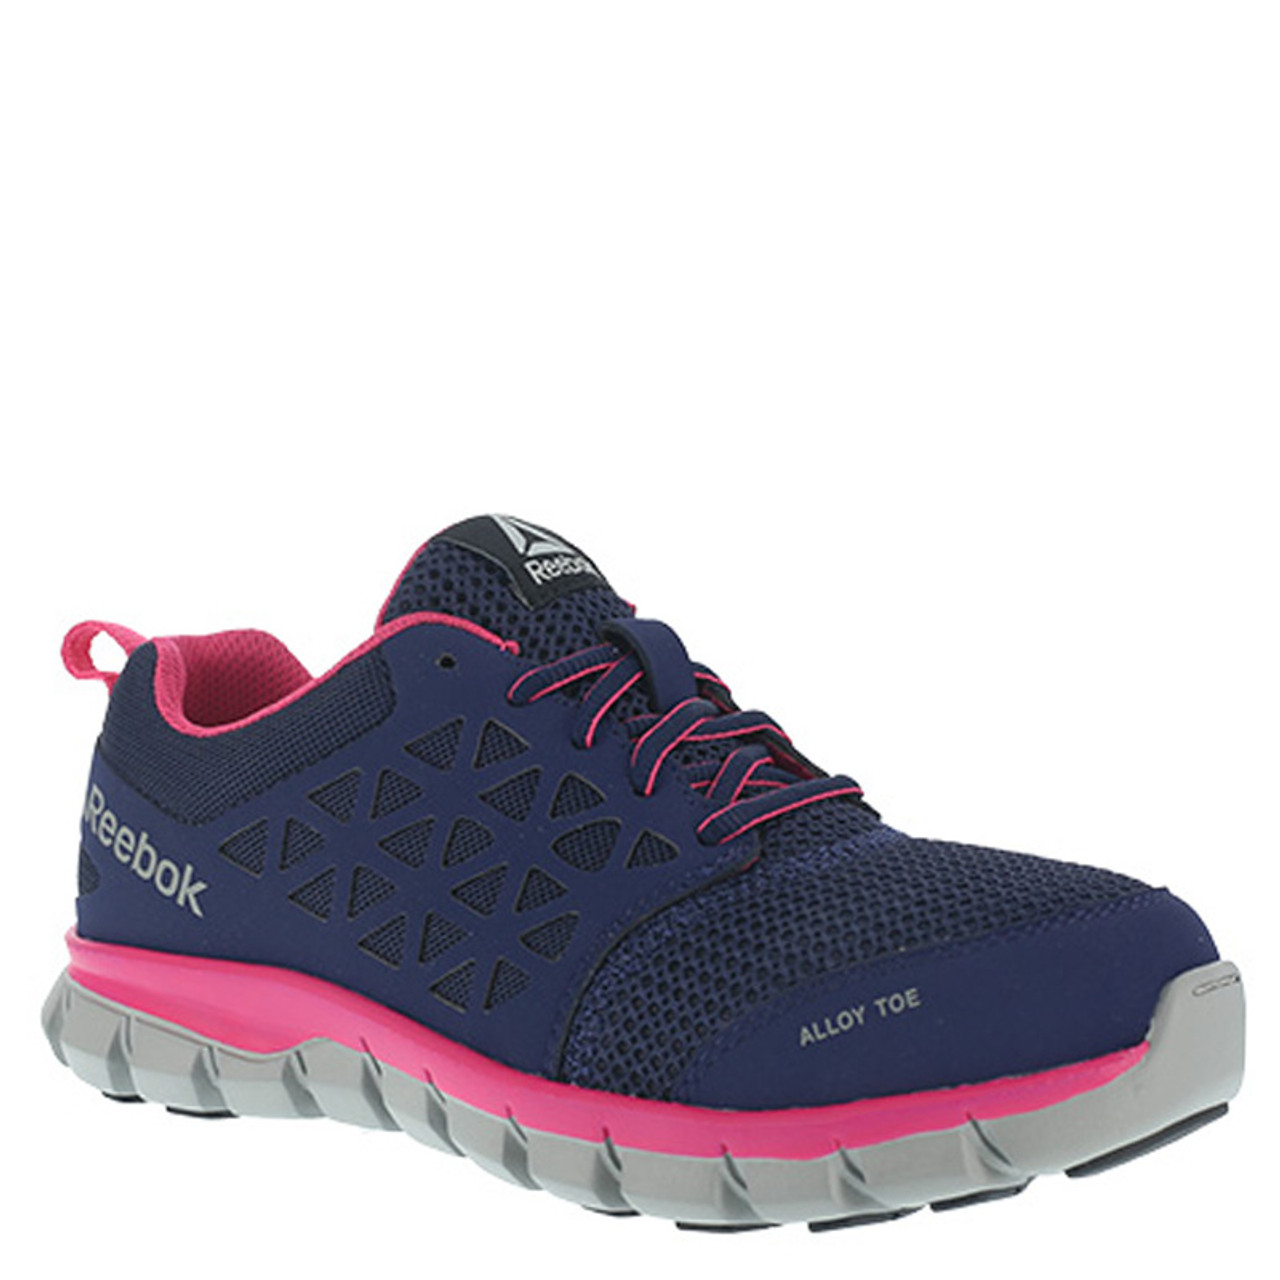 d1d16d9a35008 Reebok RB046 SUBLITE Athletic Style Safety Toe Work Shoes - Family Footwear  Center